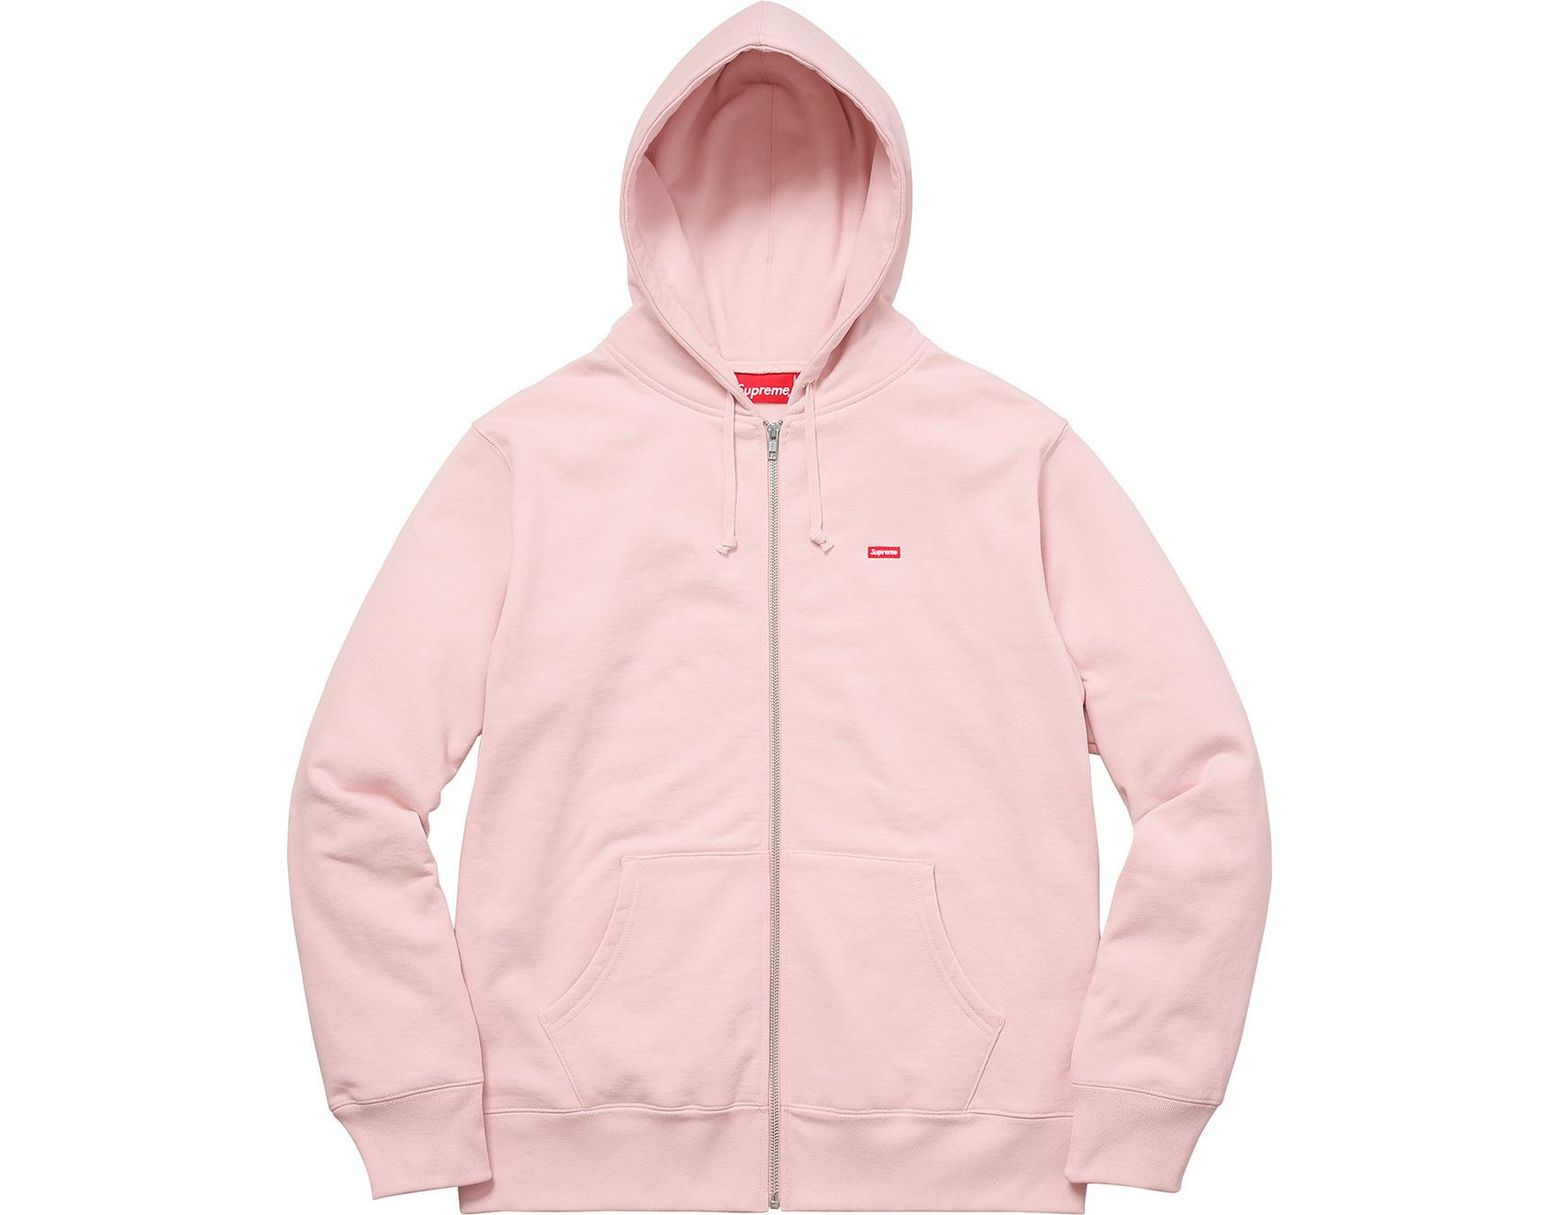 c1f11cec Supreme Small Box Zip Up Sweatshirt Pale Pink in Pink for Men - Save 42% -  Lyst